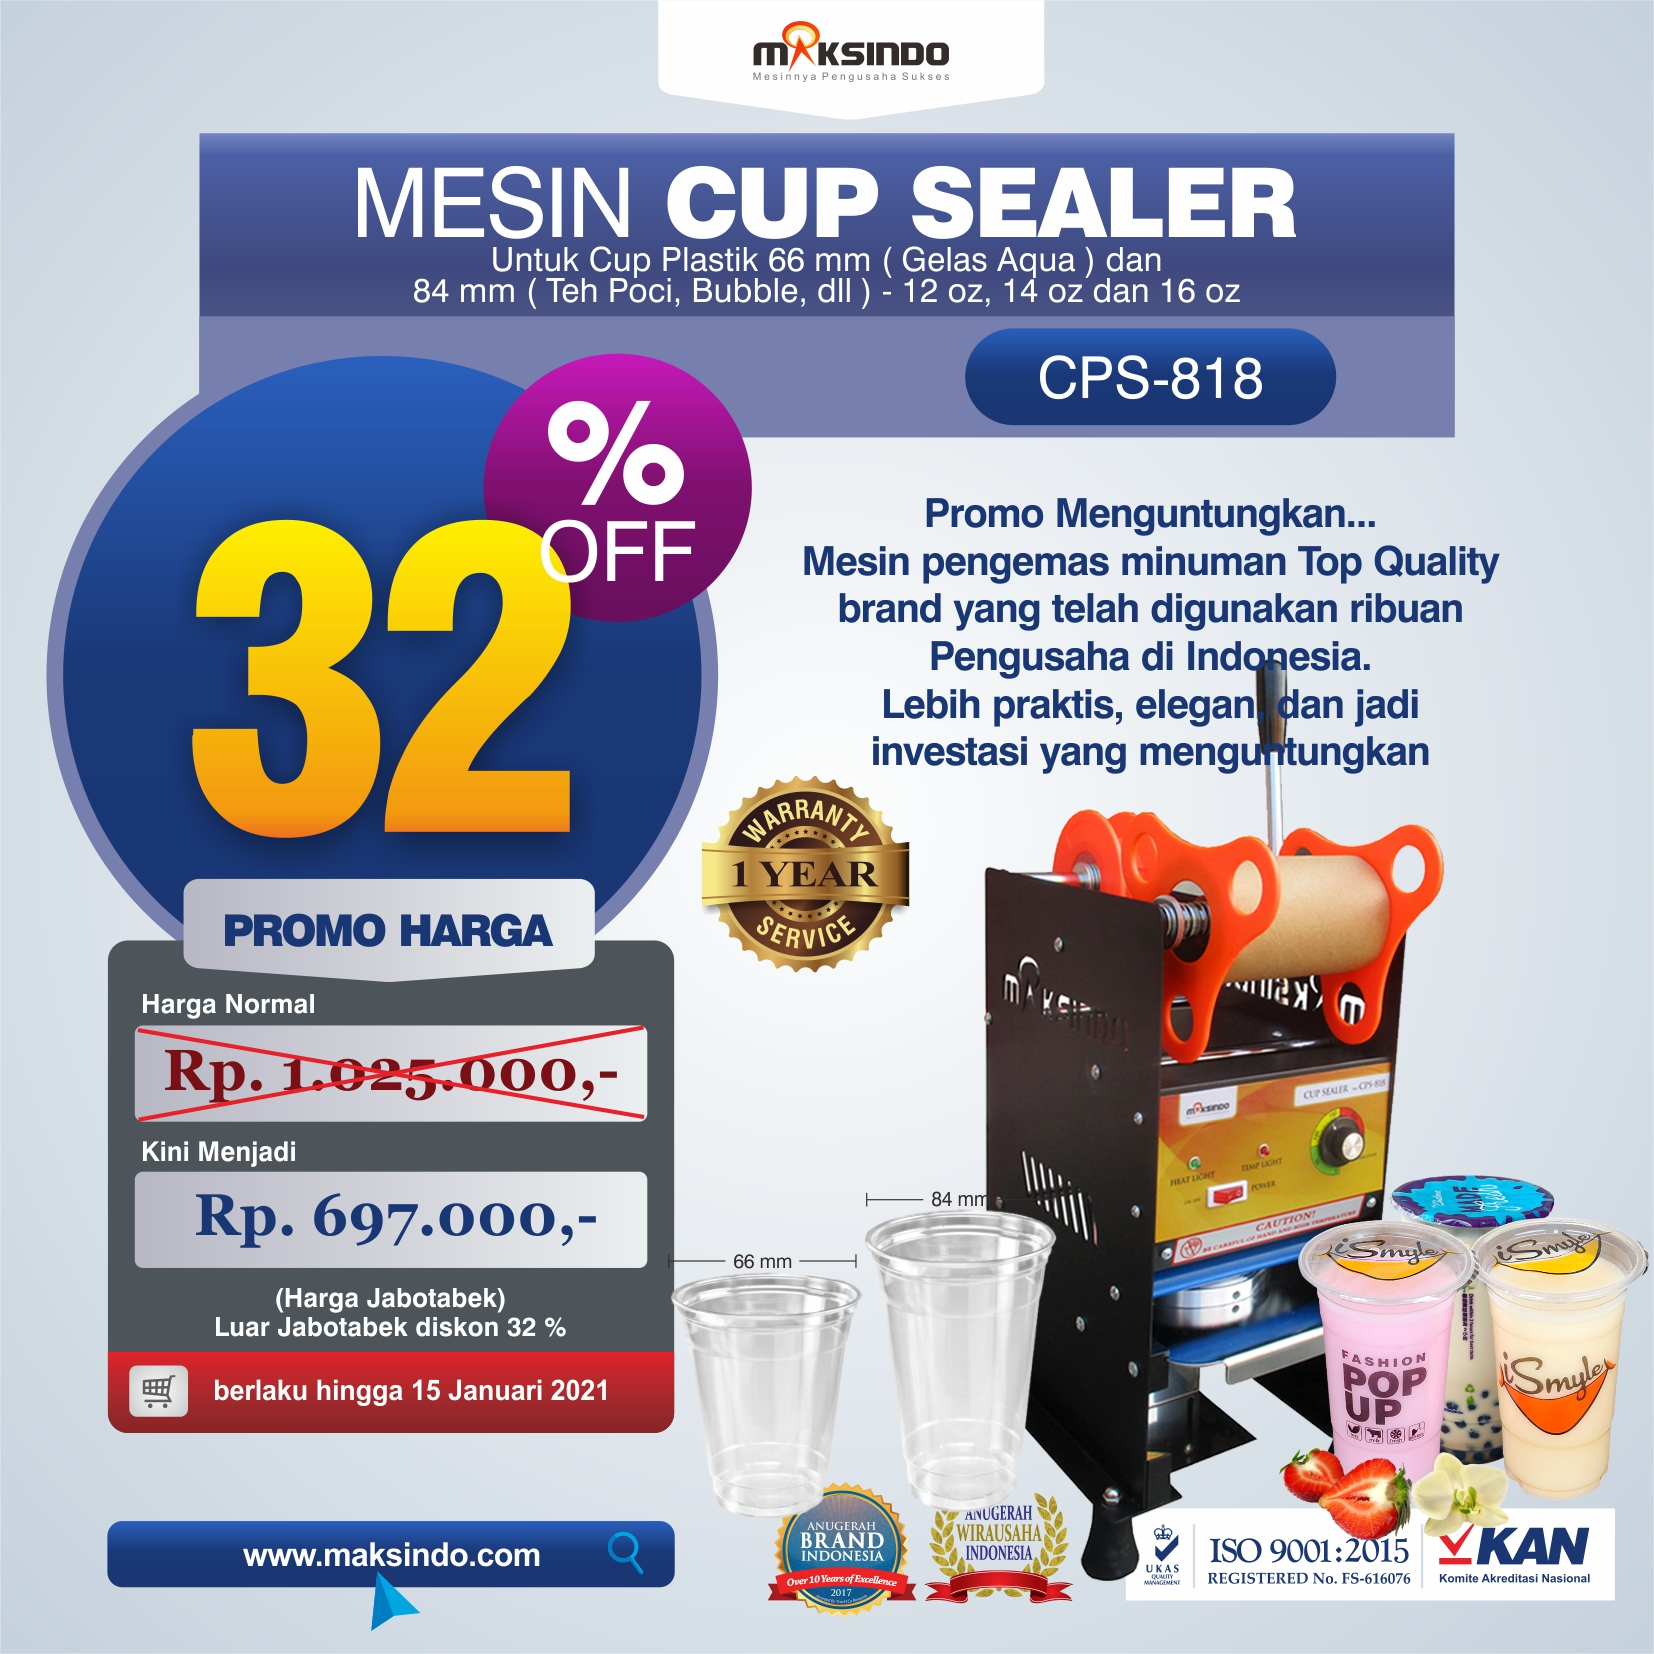 Jual Mesin Cup Sealer Manual (CPS-818) di Malang